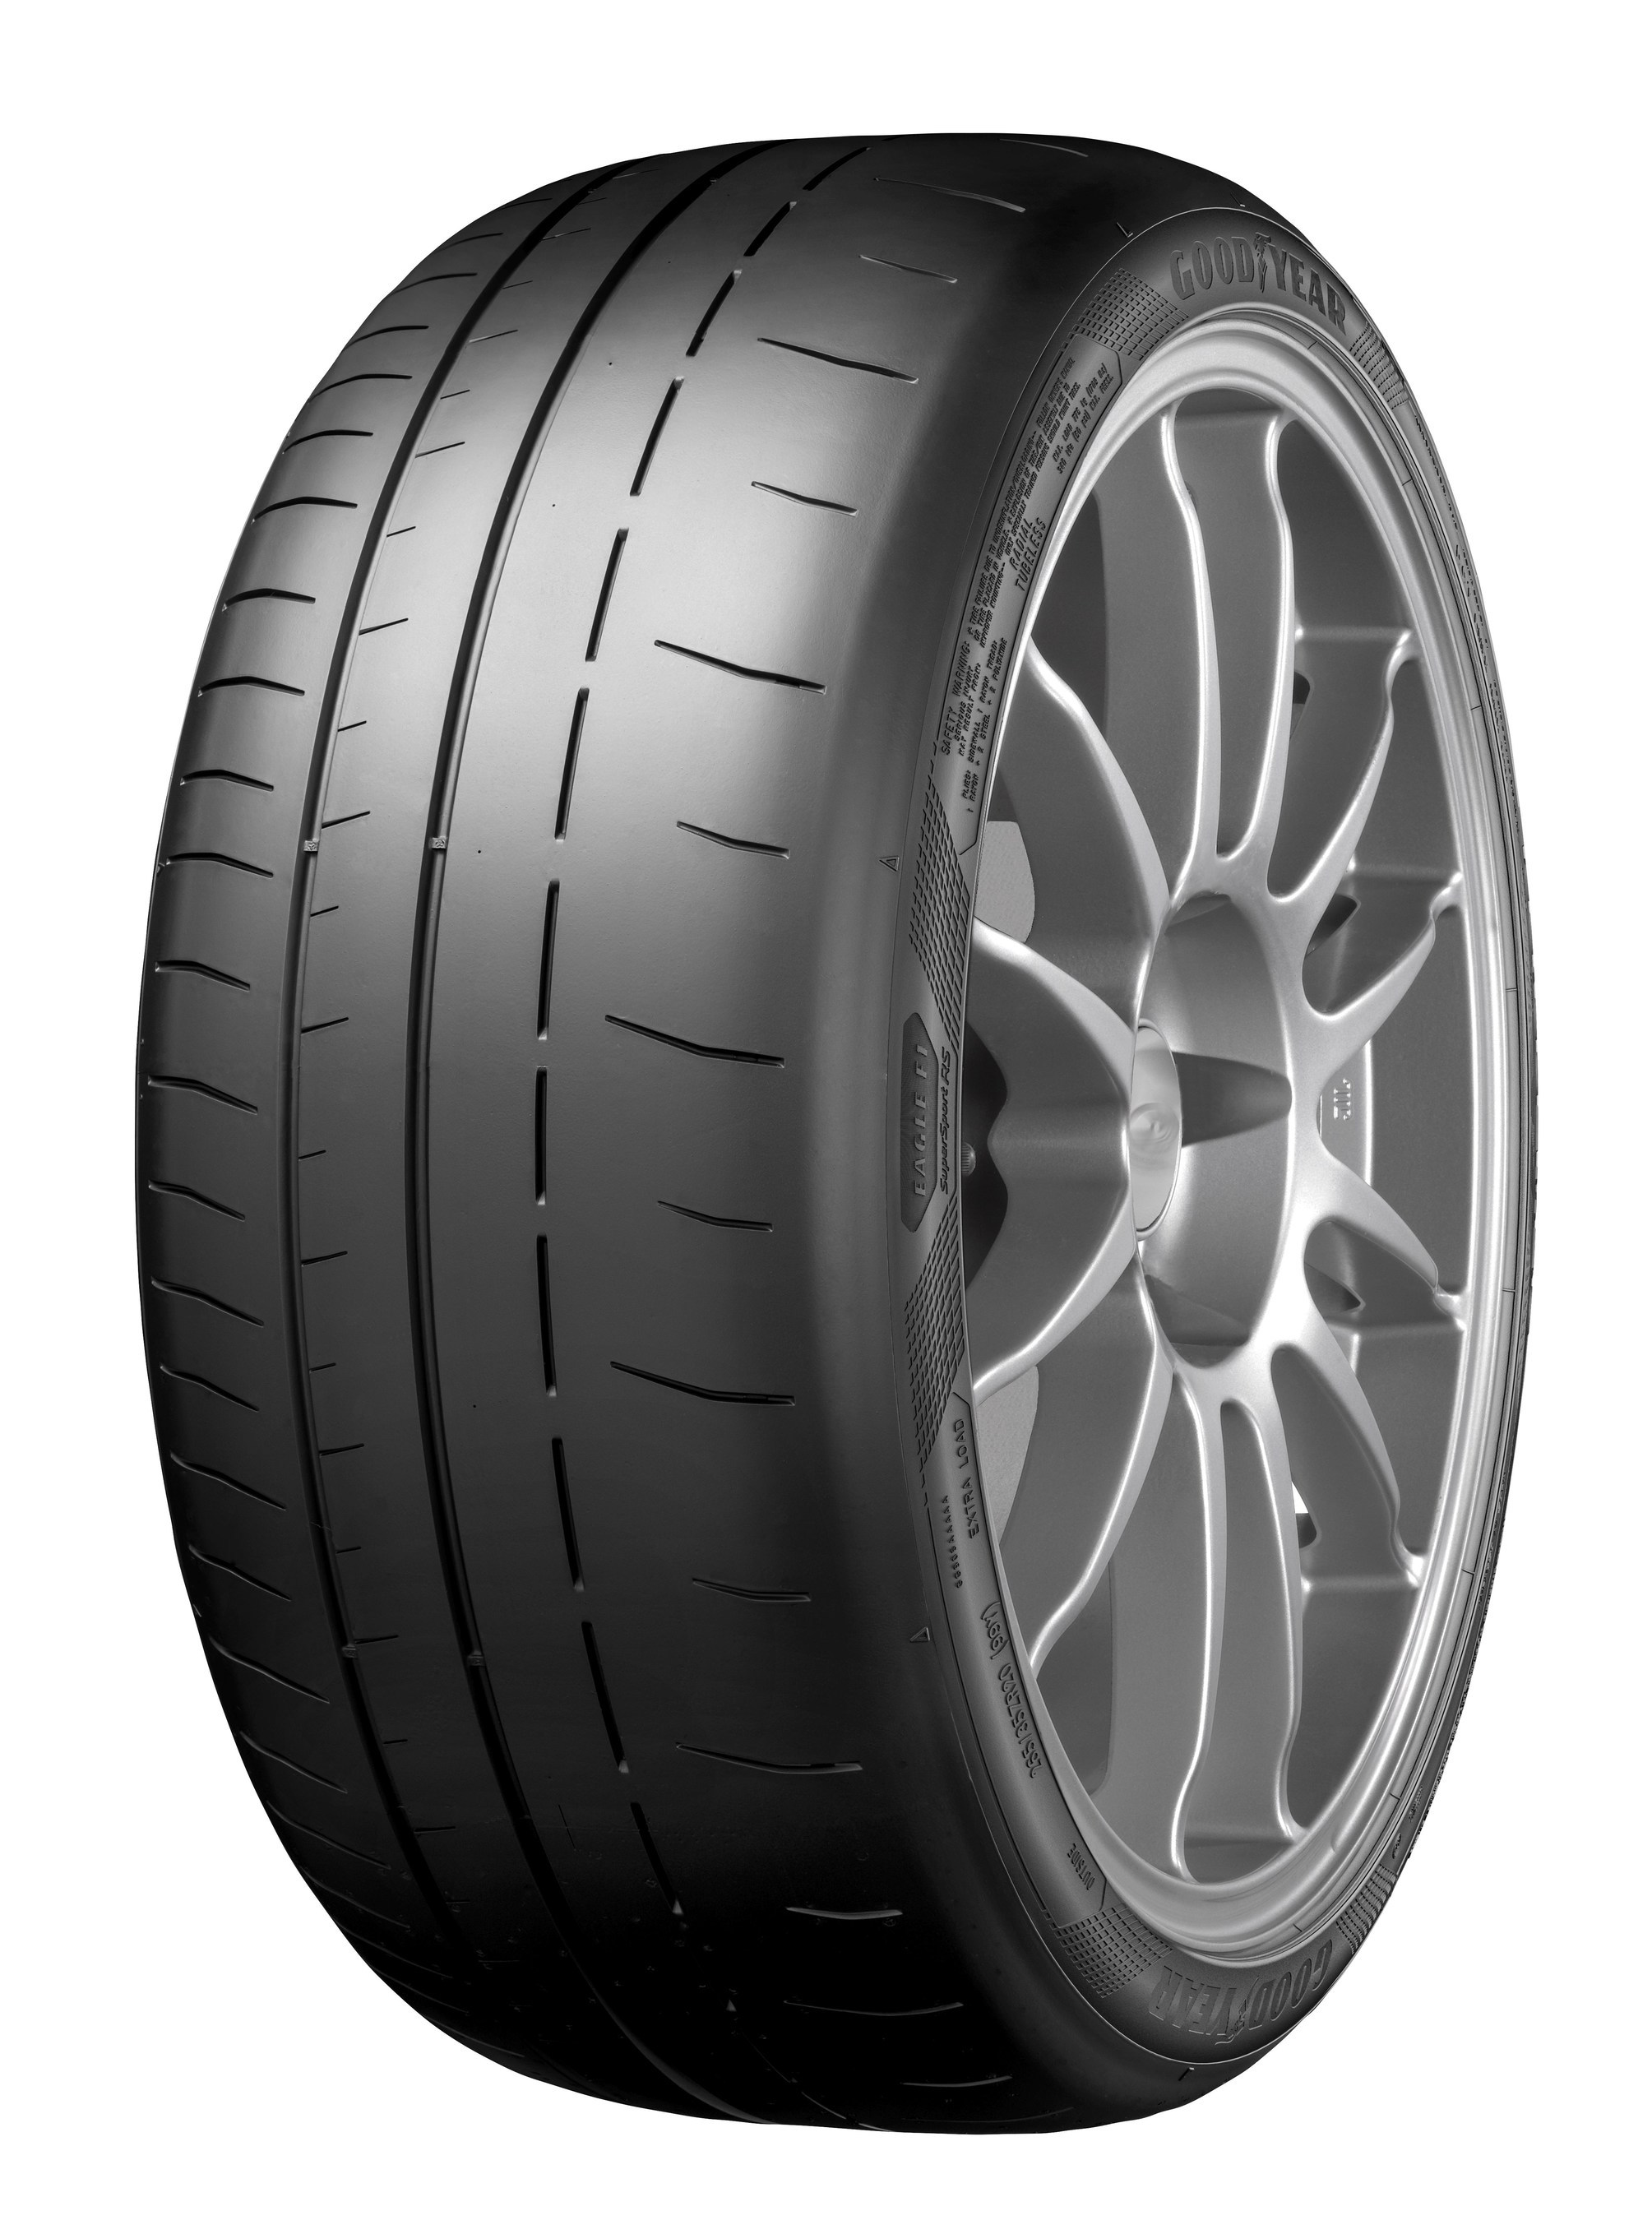 The New F1 Canna Cannova Is Set To Take Cannas To A New: Goodyear Debuts New Performance Tires At The Geneva Motor Show